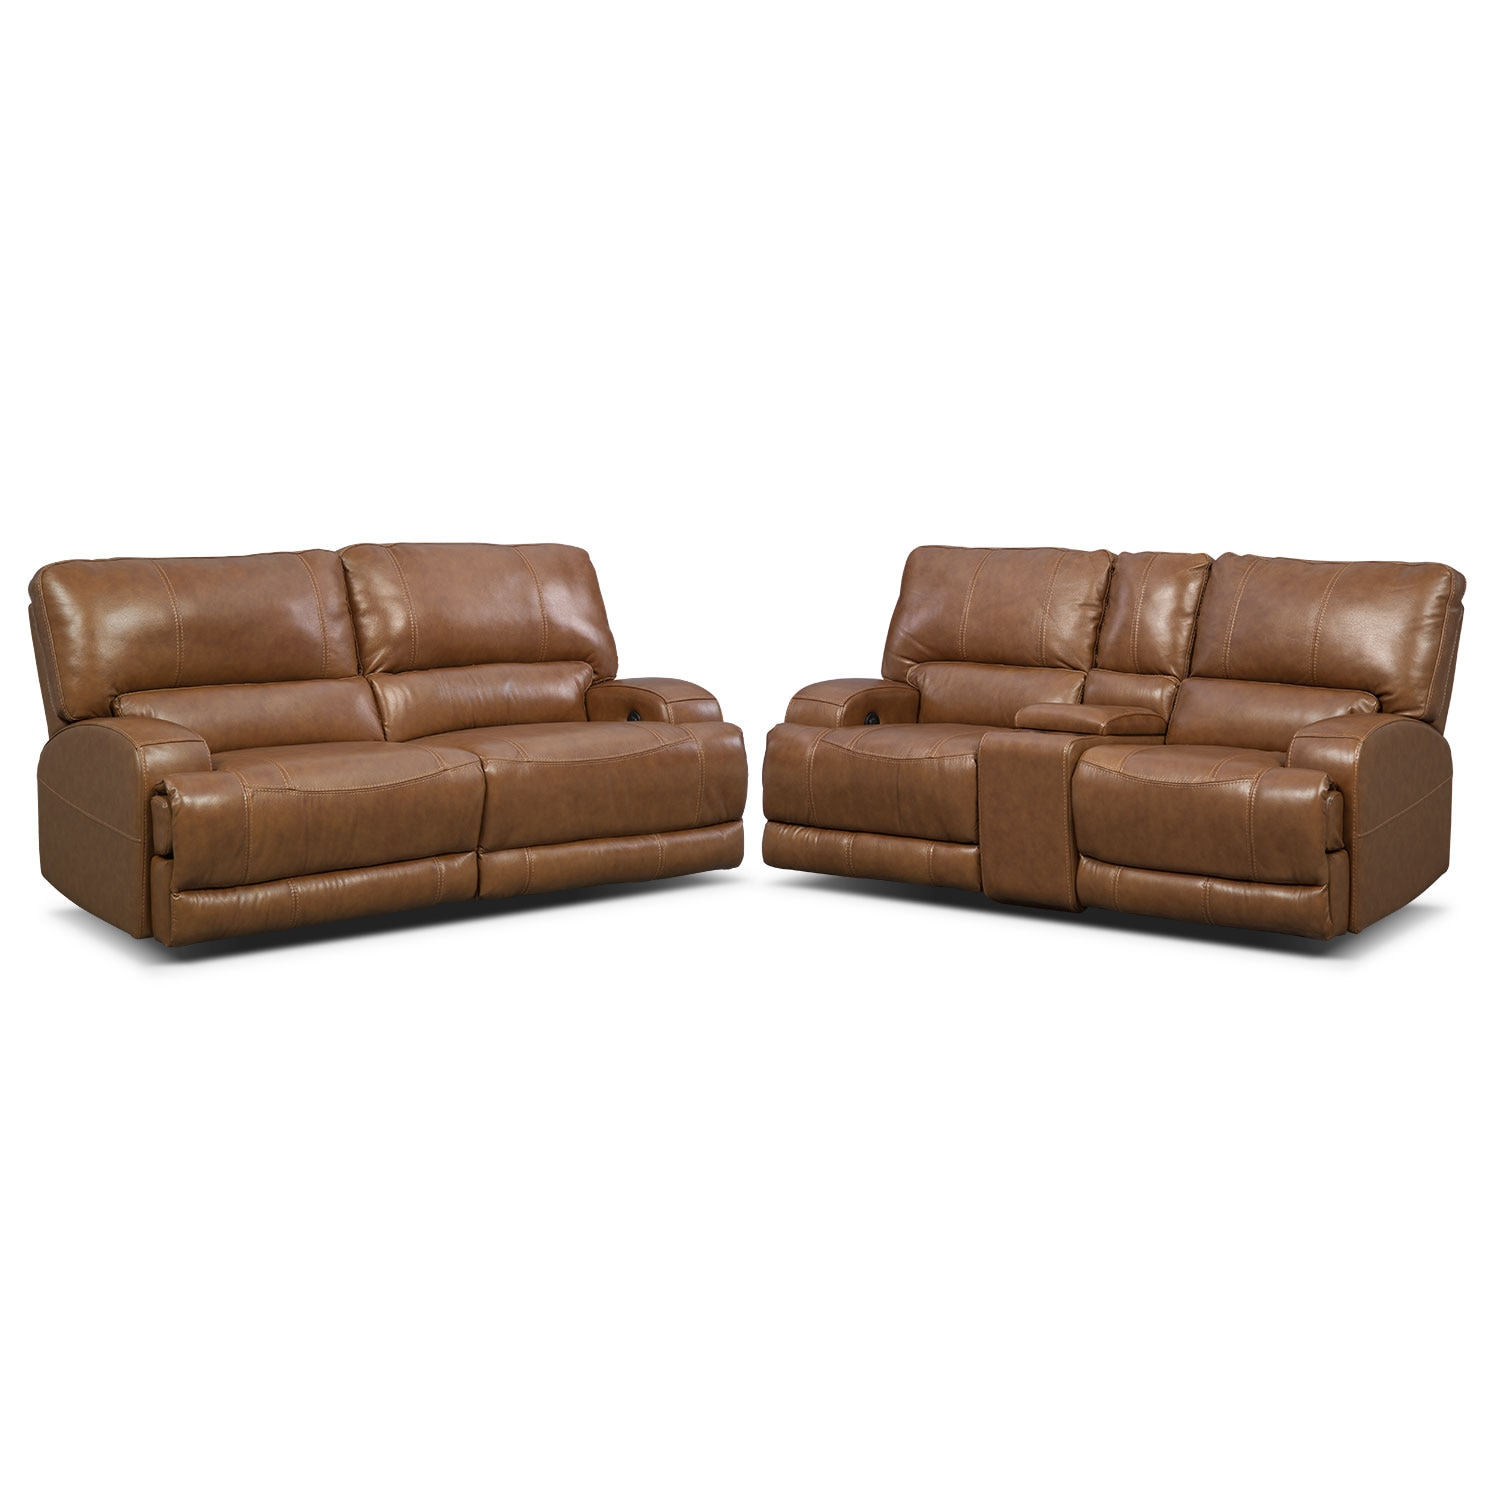 Living Room Furniture - Barton Camel Living Room 2 Pc. Power Reclining Living Room